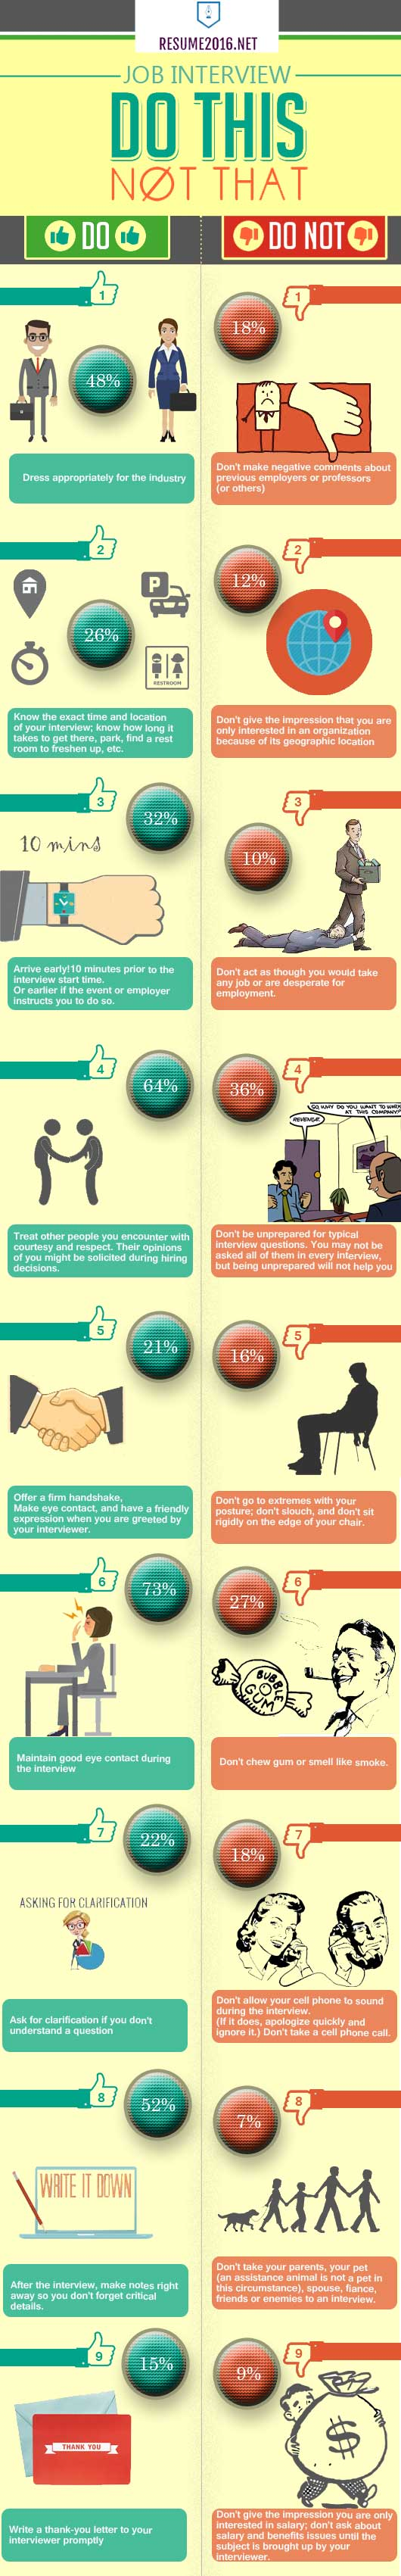 Job Interview Do's and Dont's in 2016